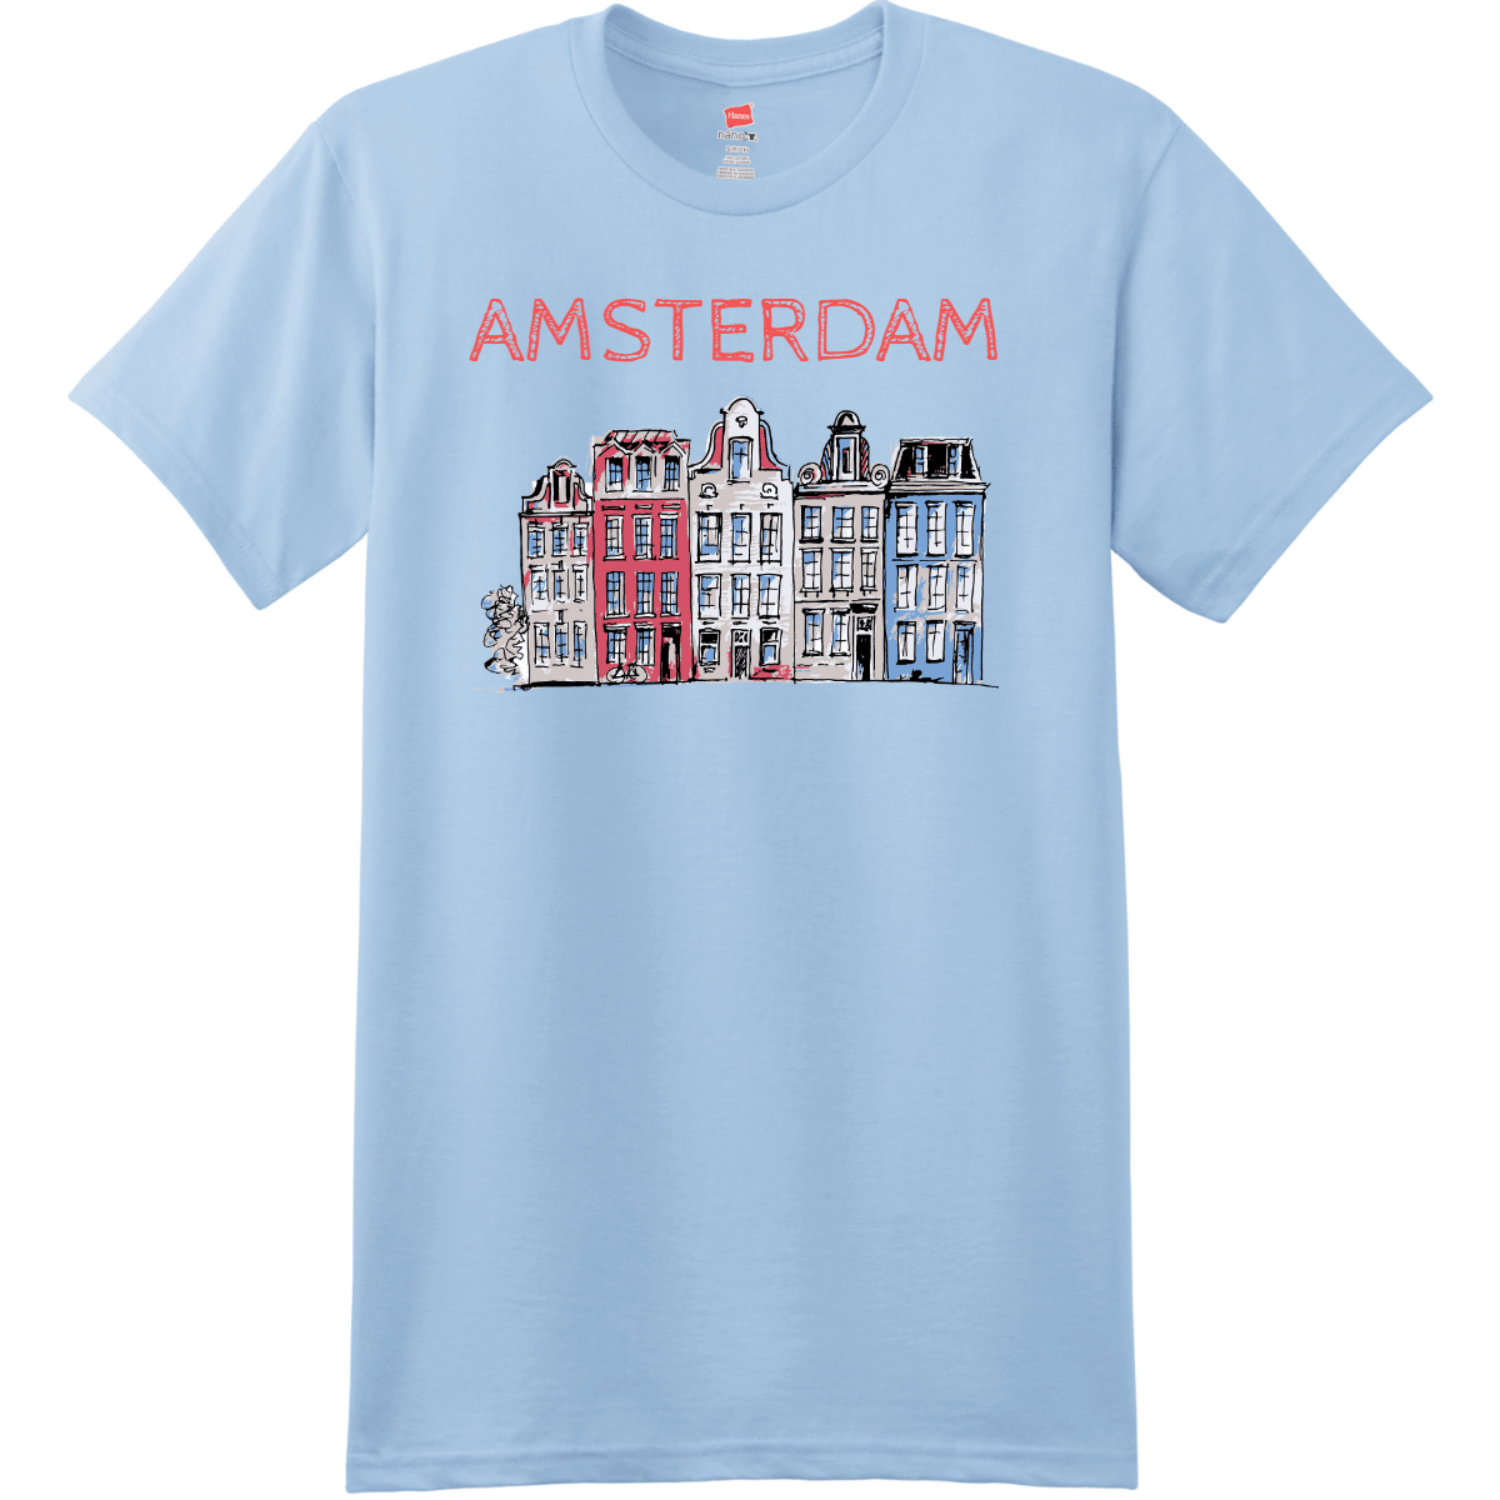 Amsterdam Holland Leaning Houses T Shirt Light Blue Hanes Nano 4980 Ringspun Cotton T Shirt